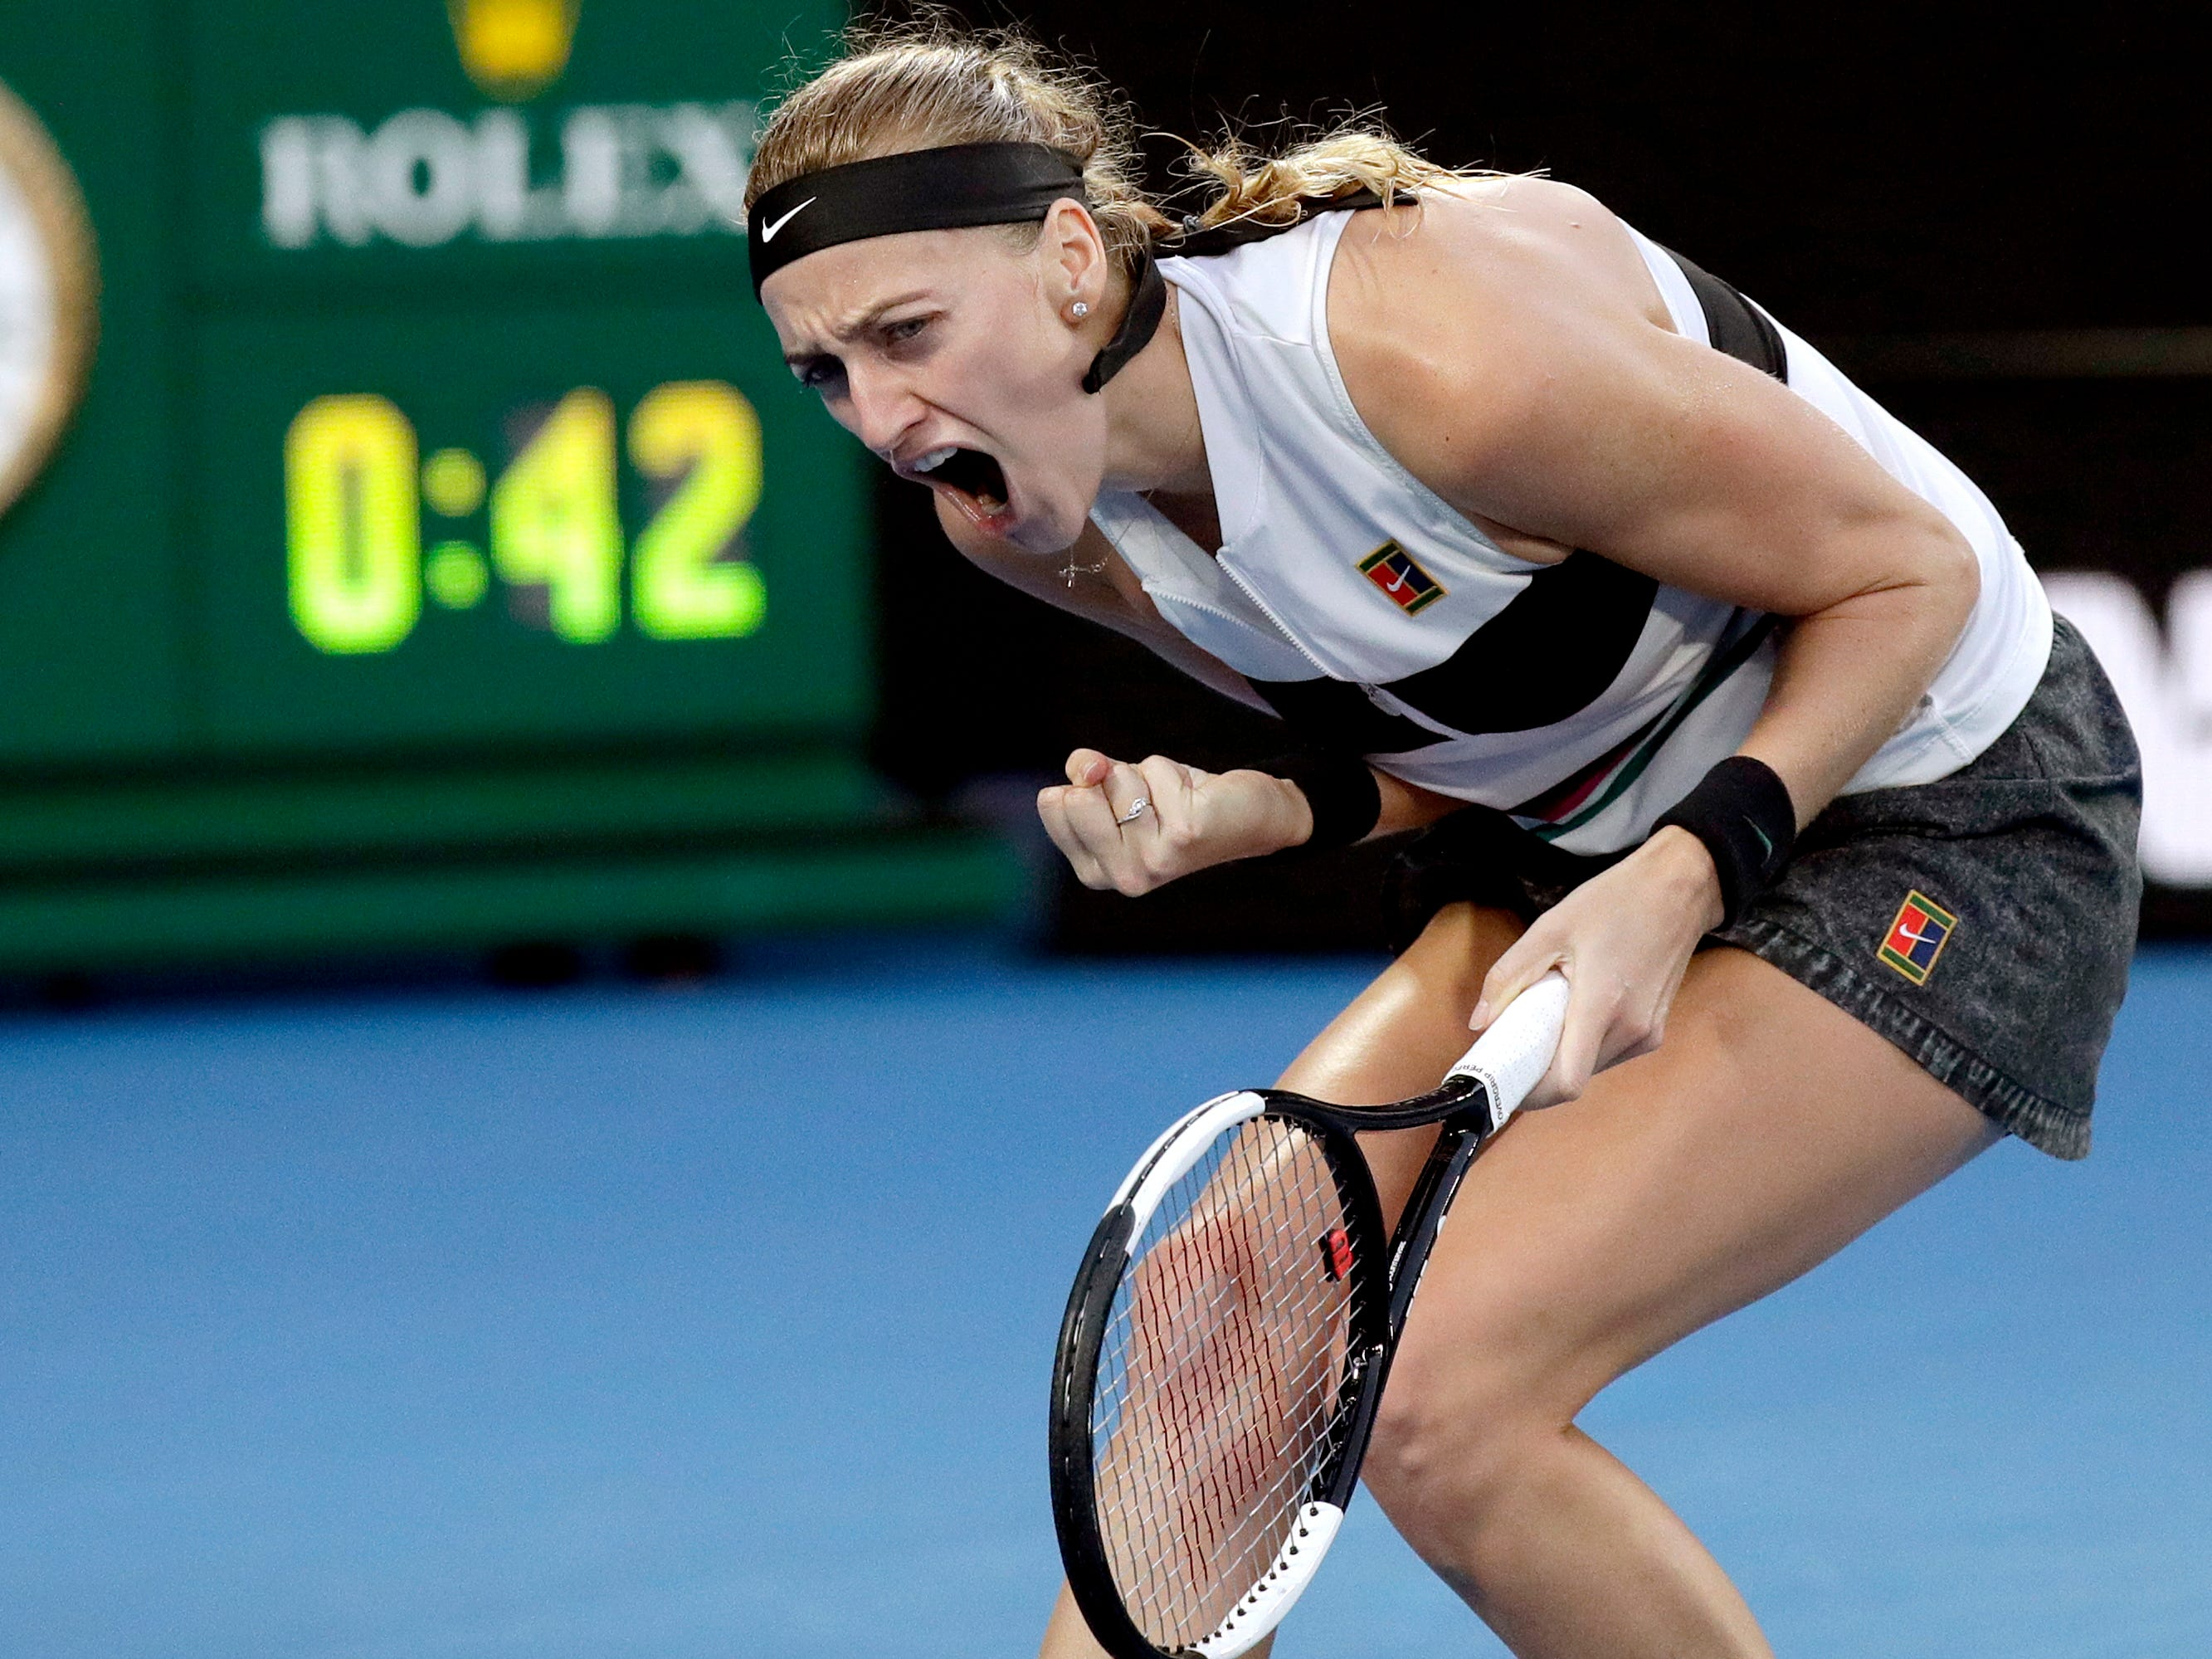 Petra Kvitova of the Czech Republic reacts after winning a point against Australia's Ashleigh Barty.